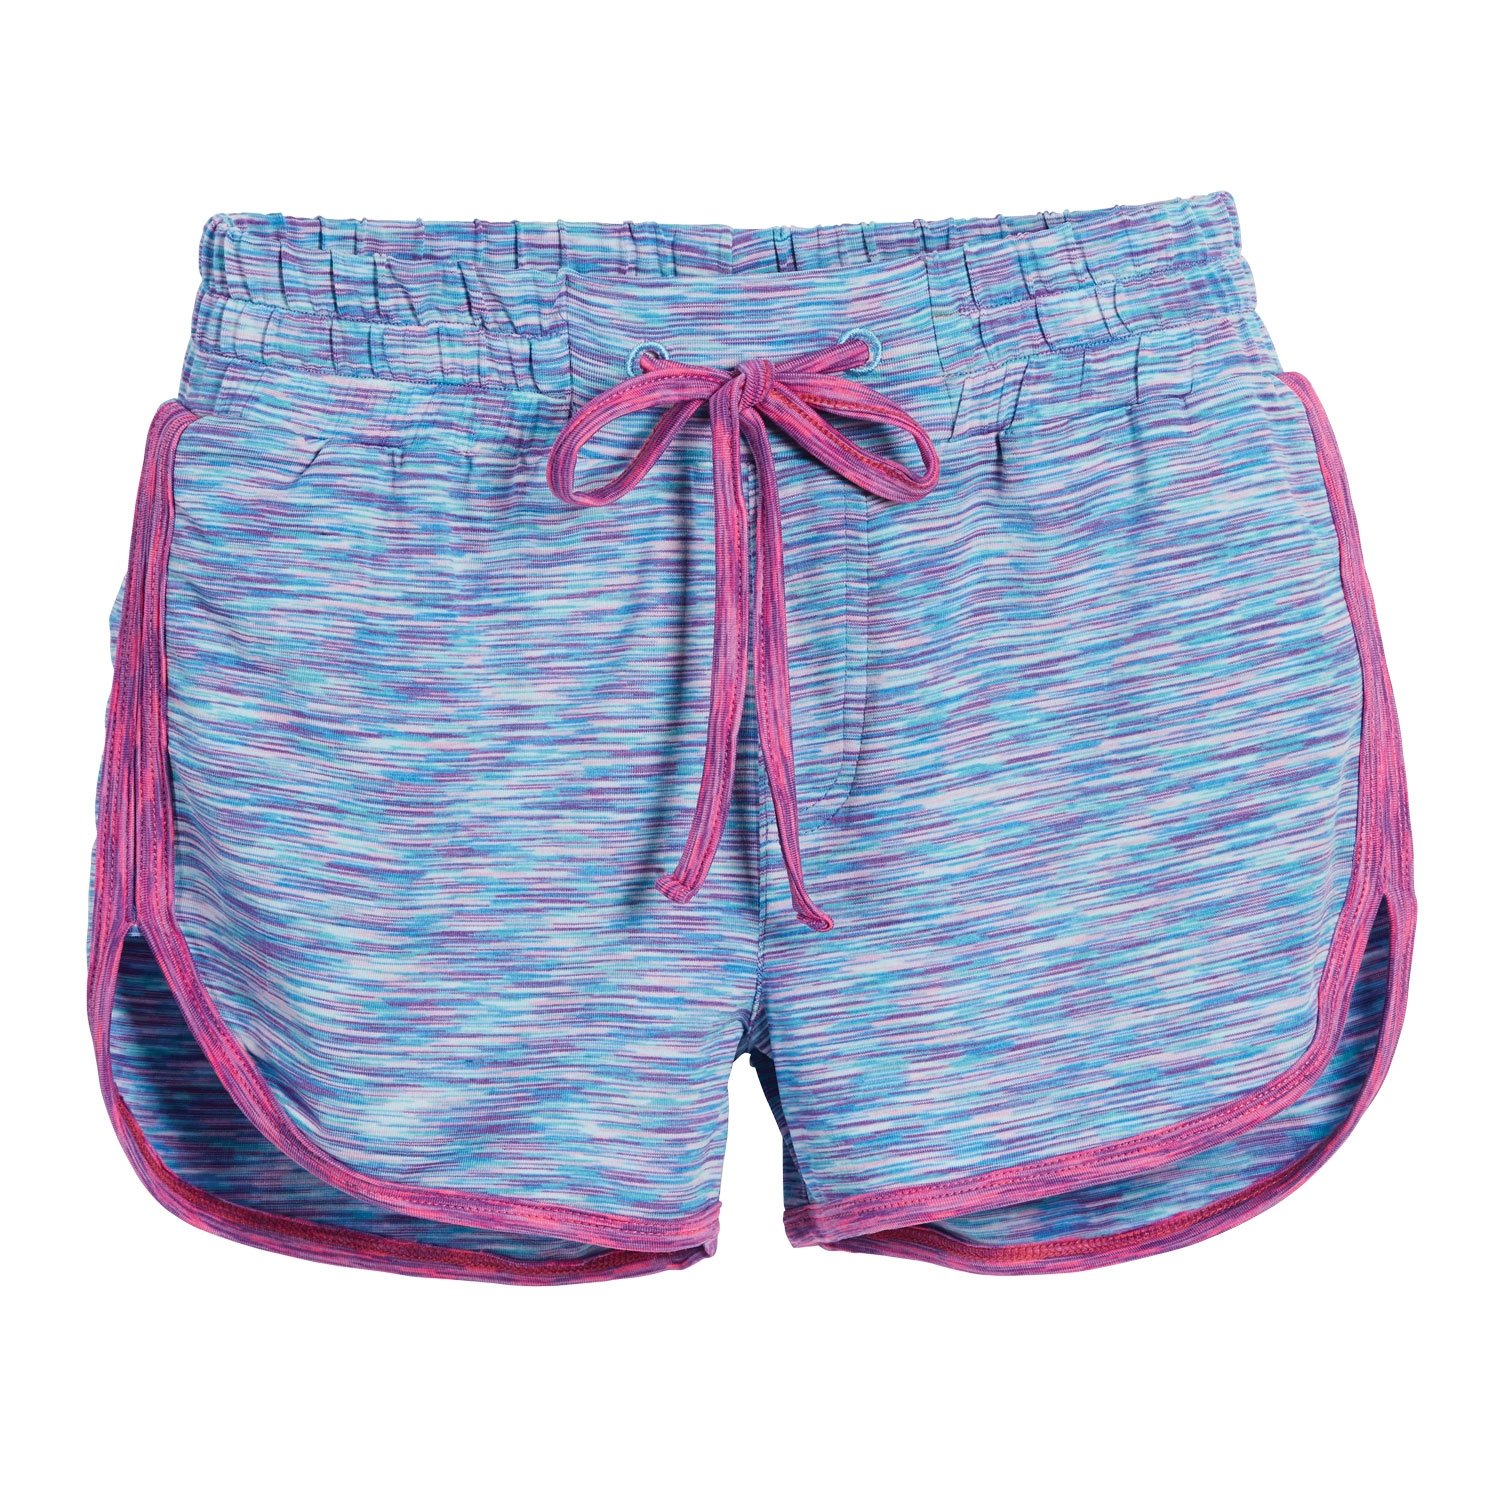 Beachcombers Girls Polyester/Spandex Mermaid Track Shorts With Elastic Waist Band Pink Small